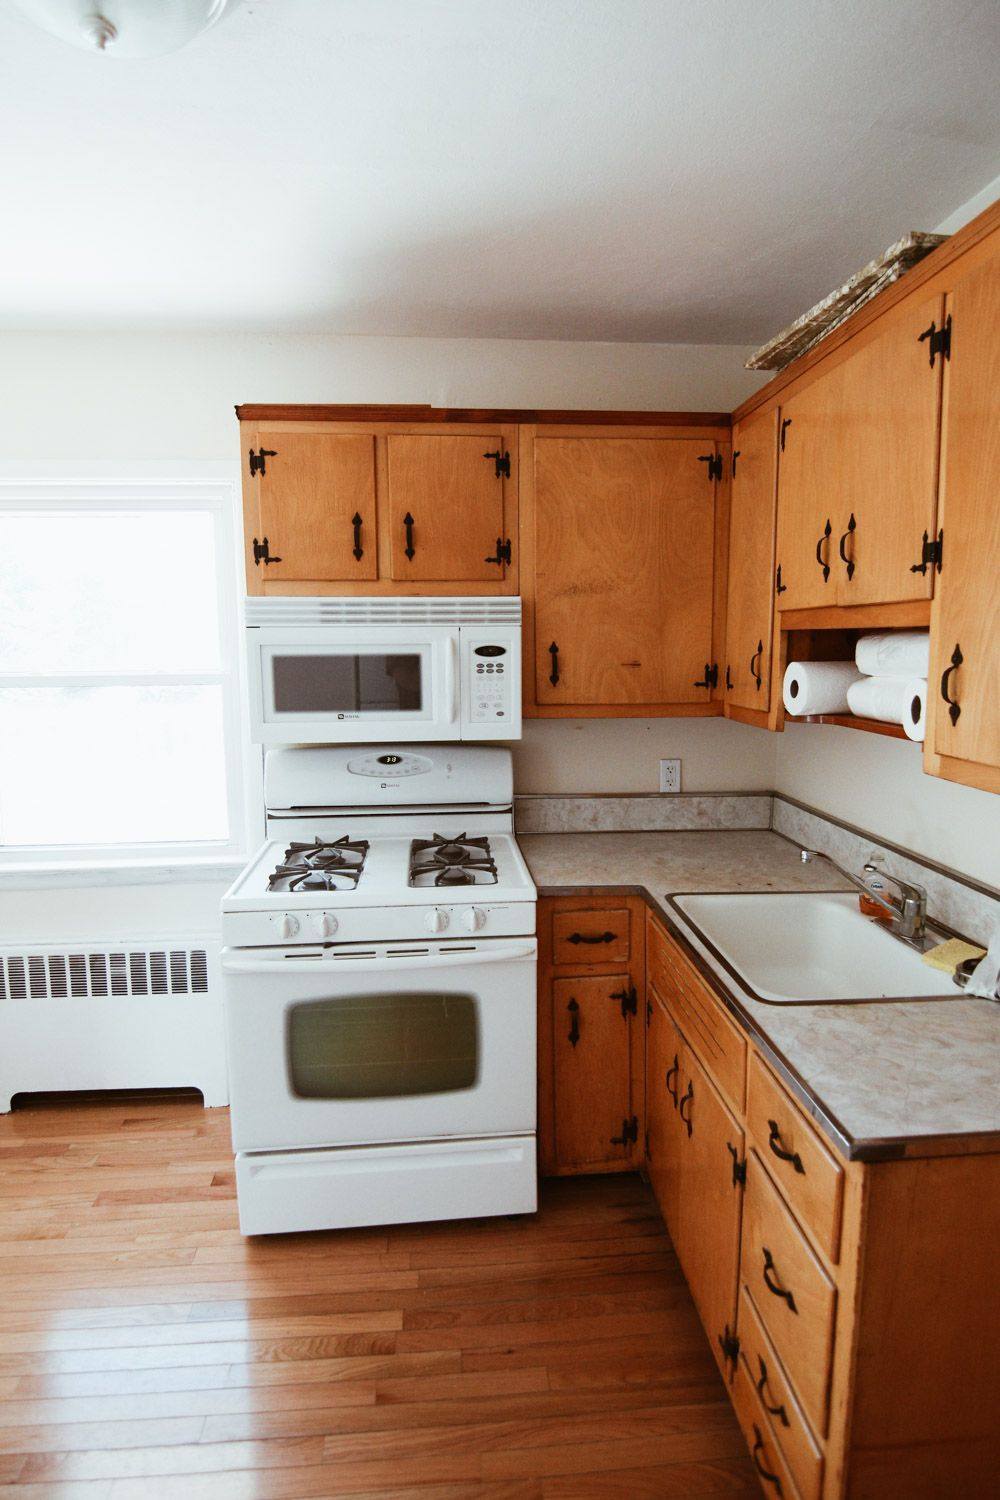 Kitchen Before After How I Painted My Kitchen Cabinets White Steffy In 2020 Shabby Chic Kitchen Cabinets Budget Kitchen Remodel Kitchen Cabinets Before And After